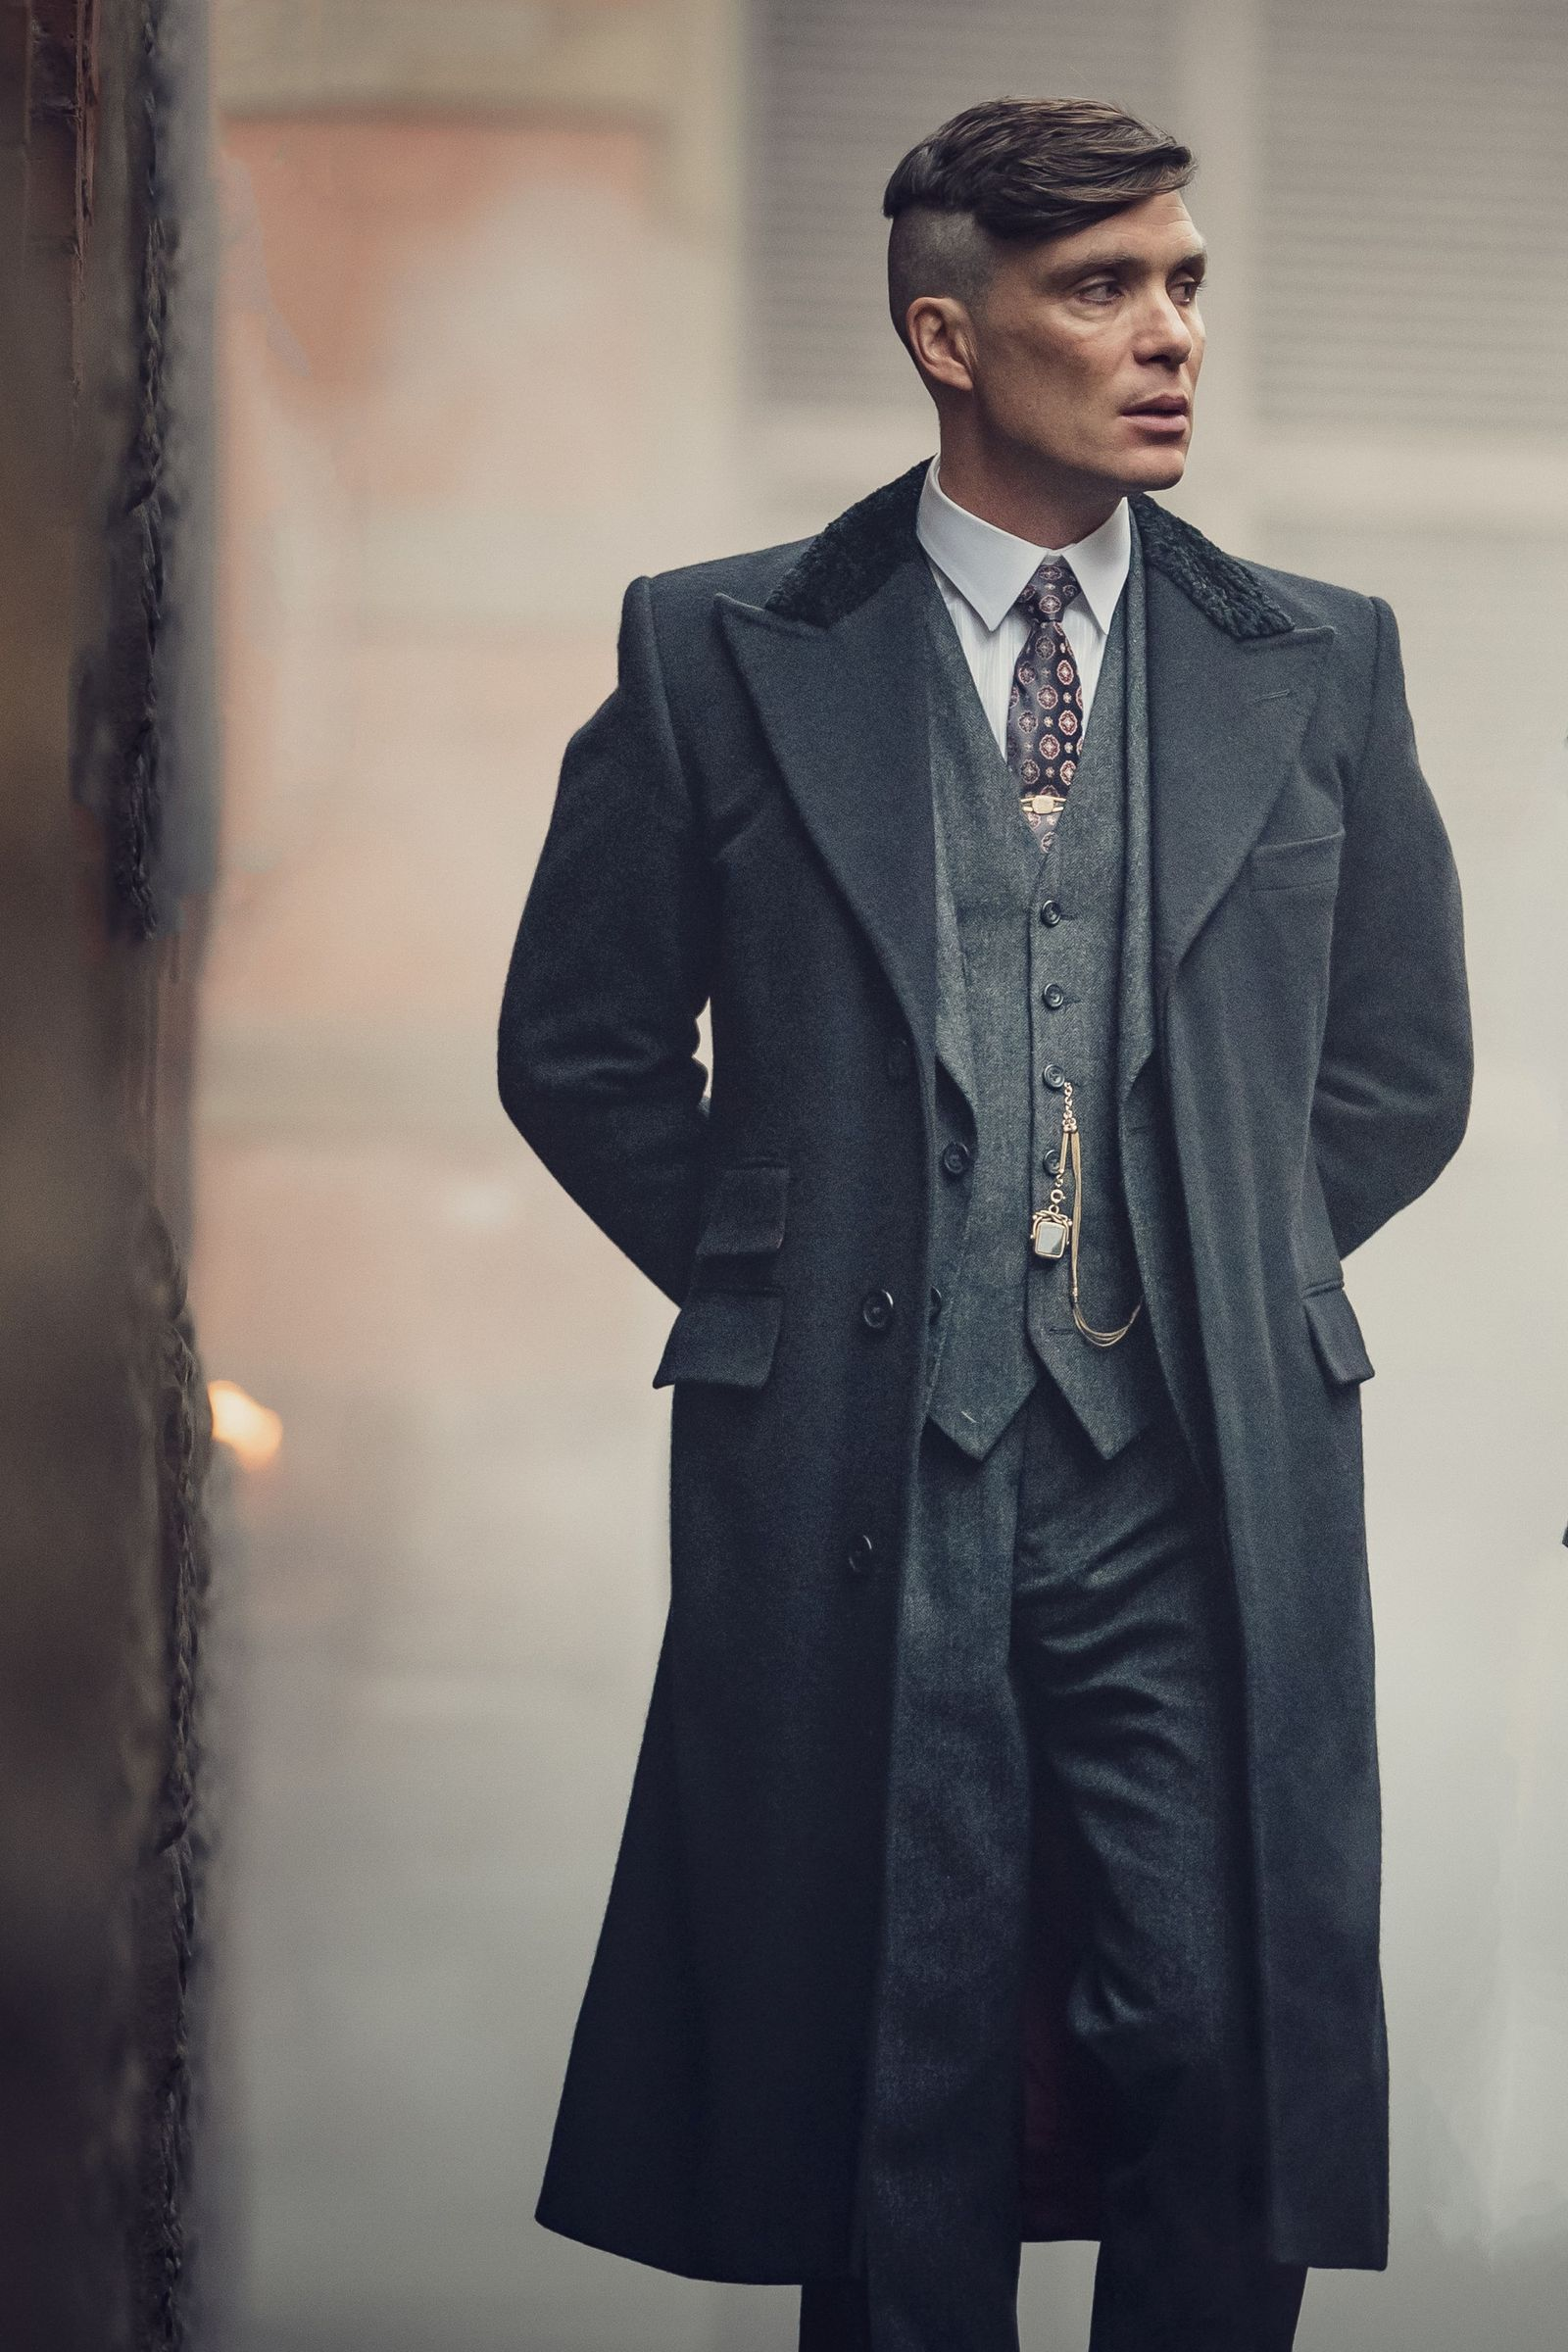 Peaky Blinders season 5 deleted scene explains Polly Gray turning on Tommy Shelby